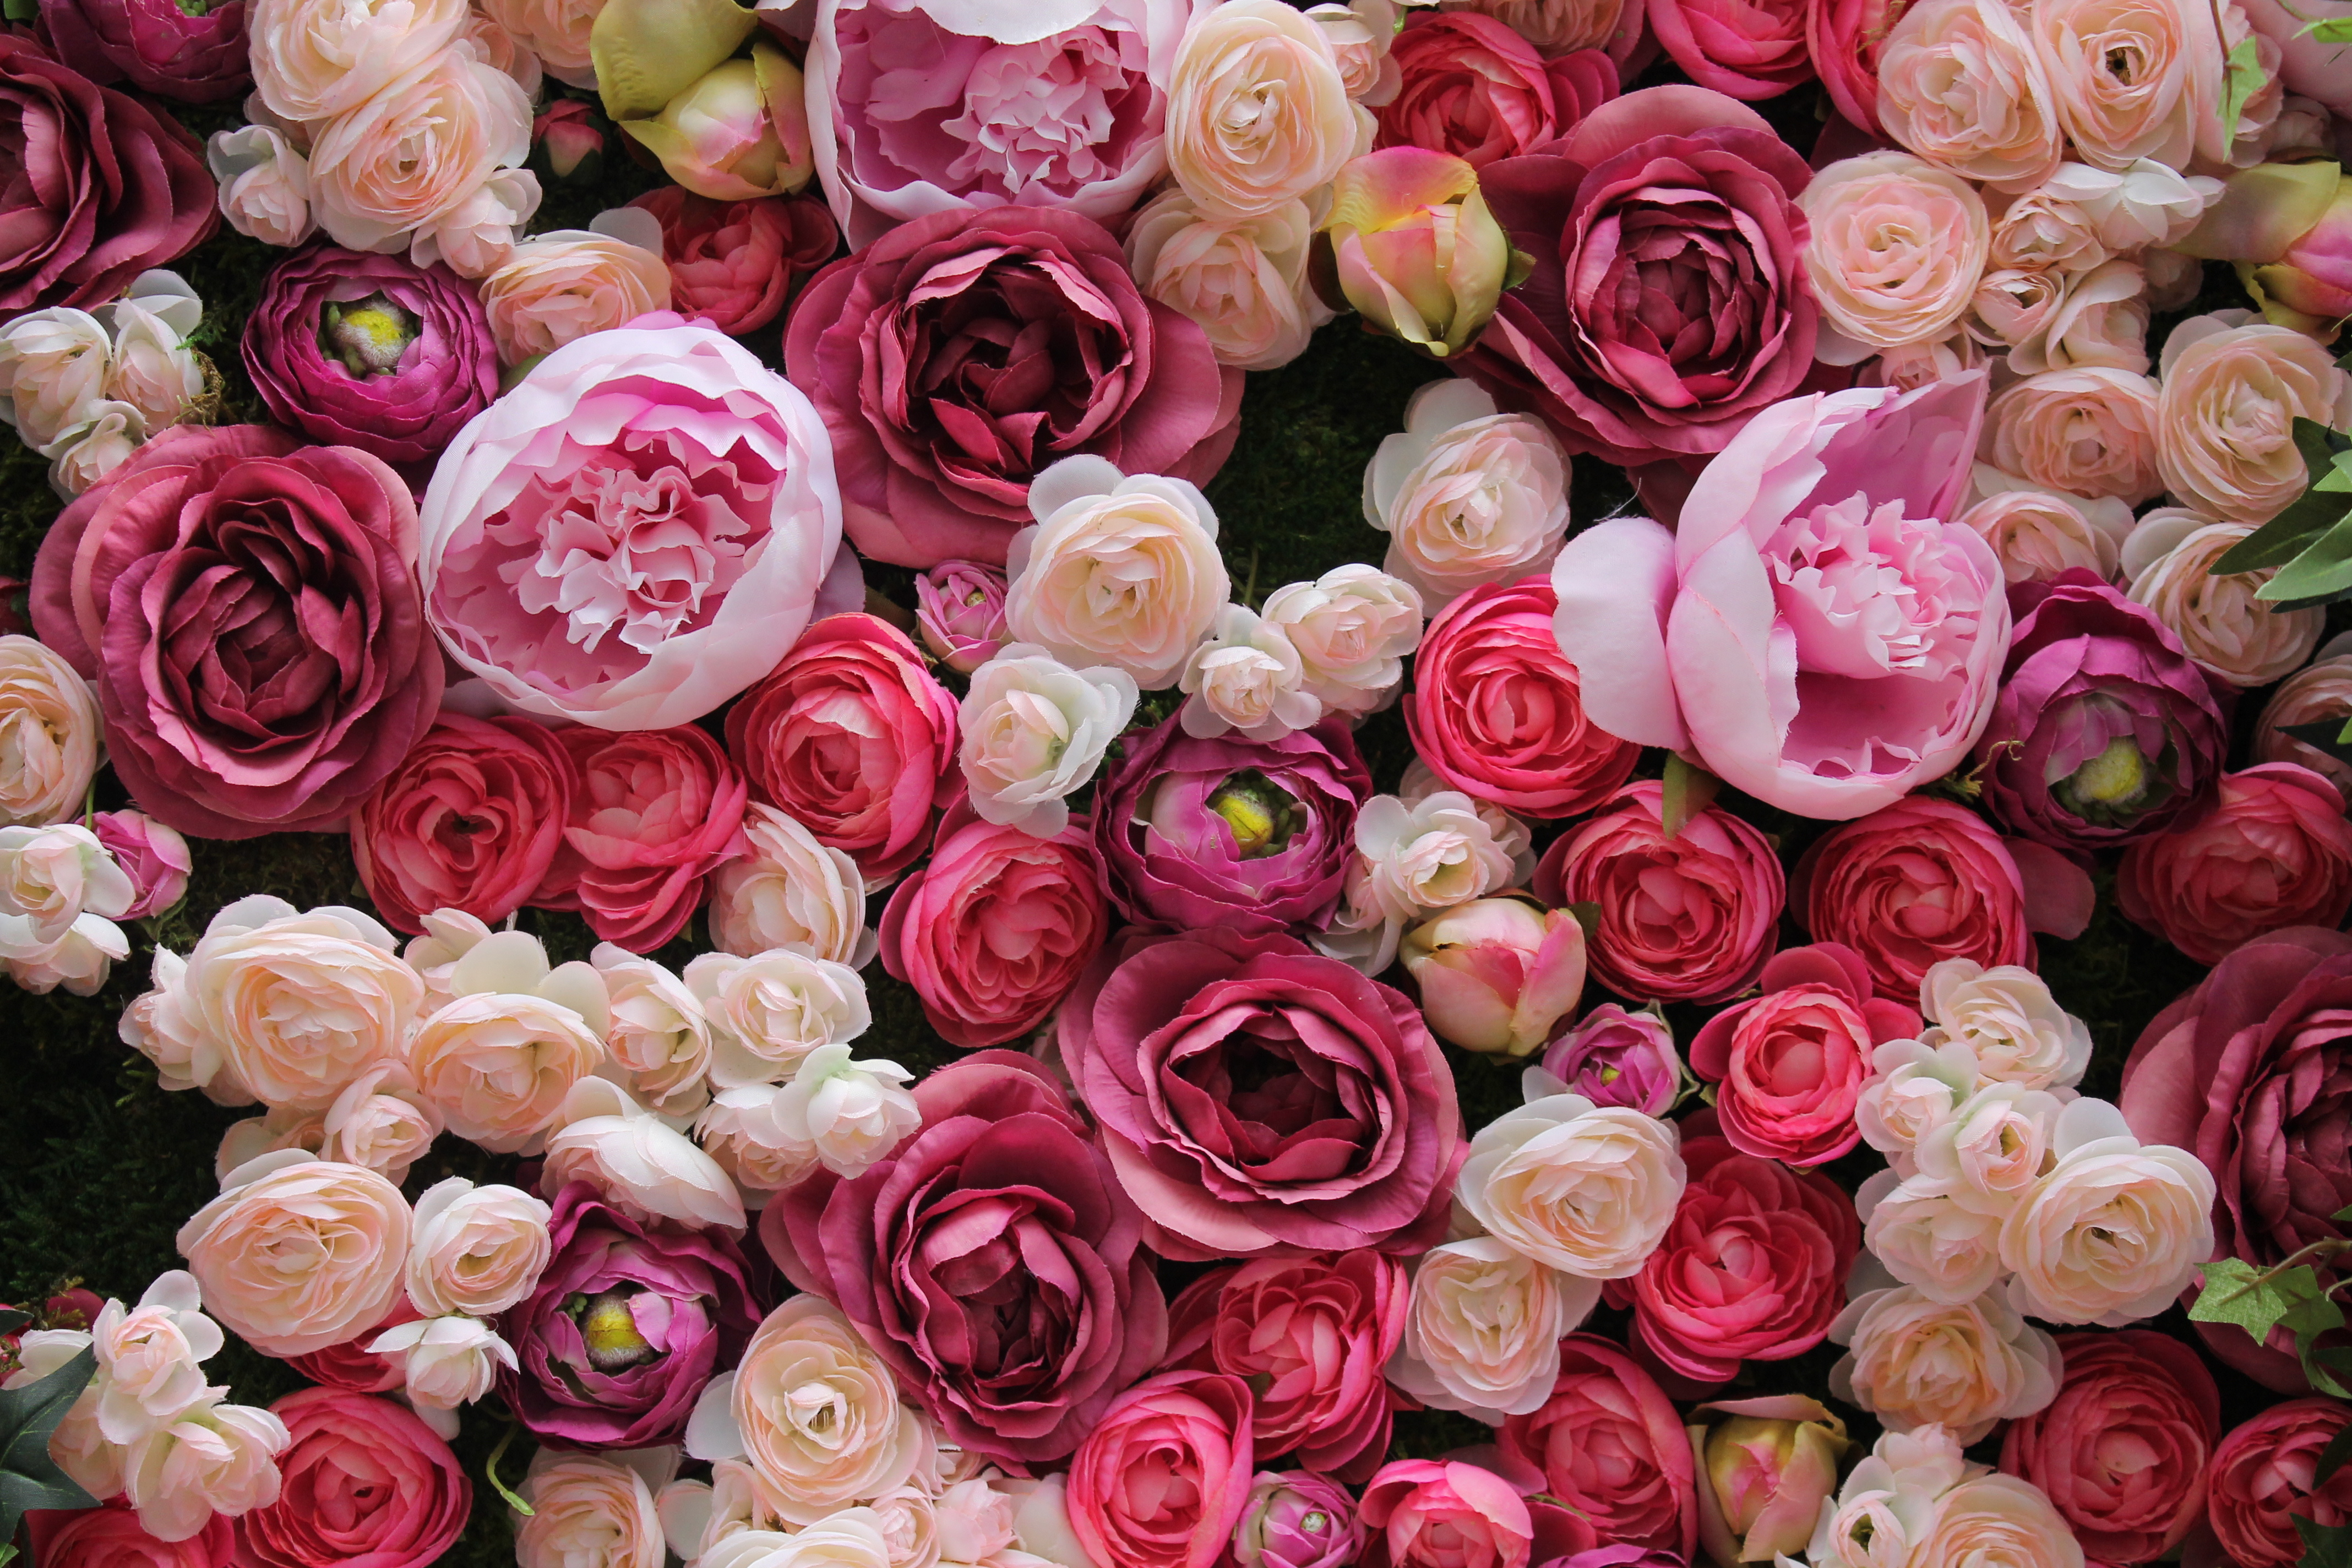 a variety of different roses and ranunculus in shades of pink